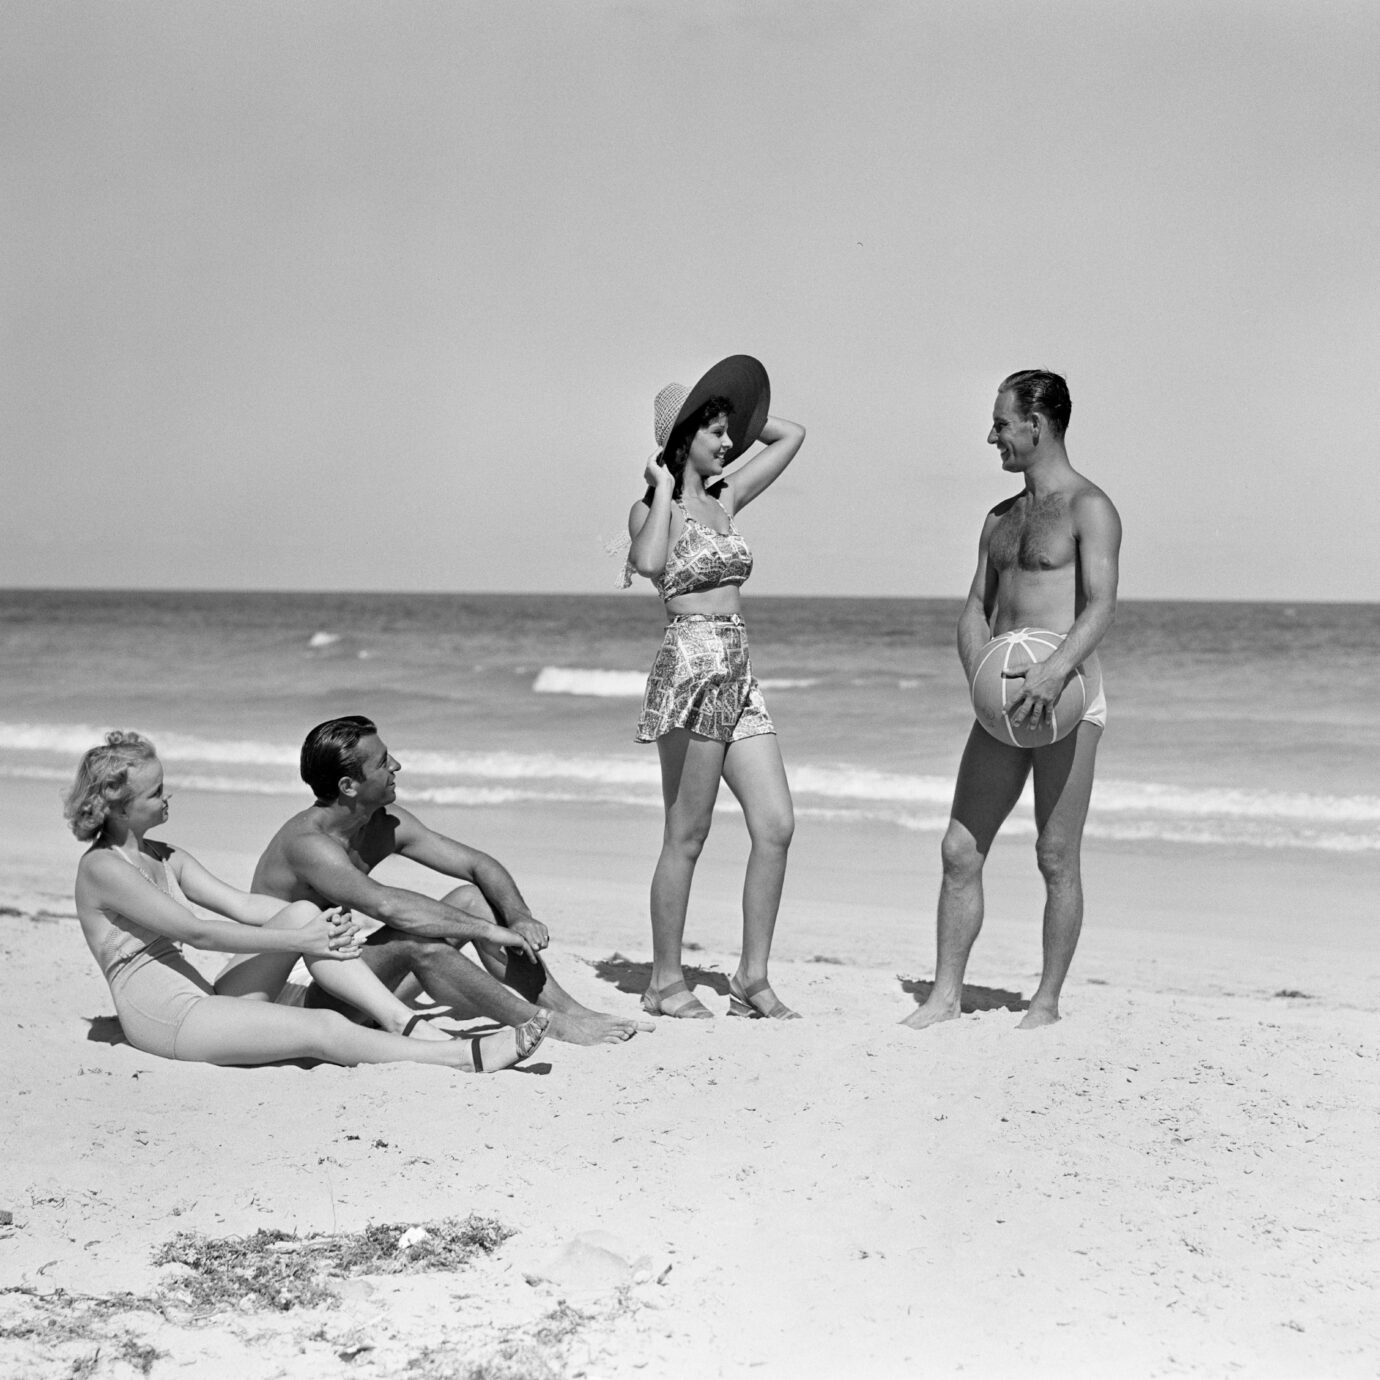 UNITED STATES - CIRCA 1930s: Two couples standing on beach.